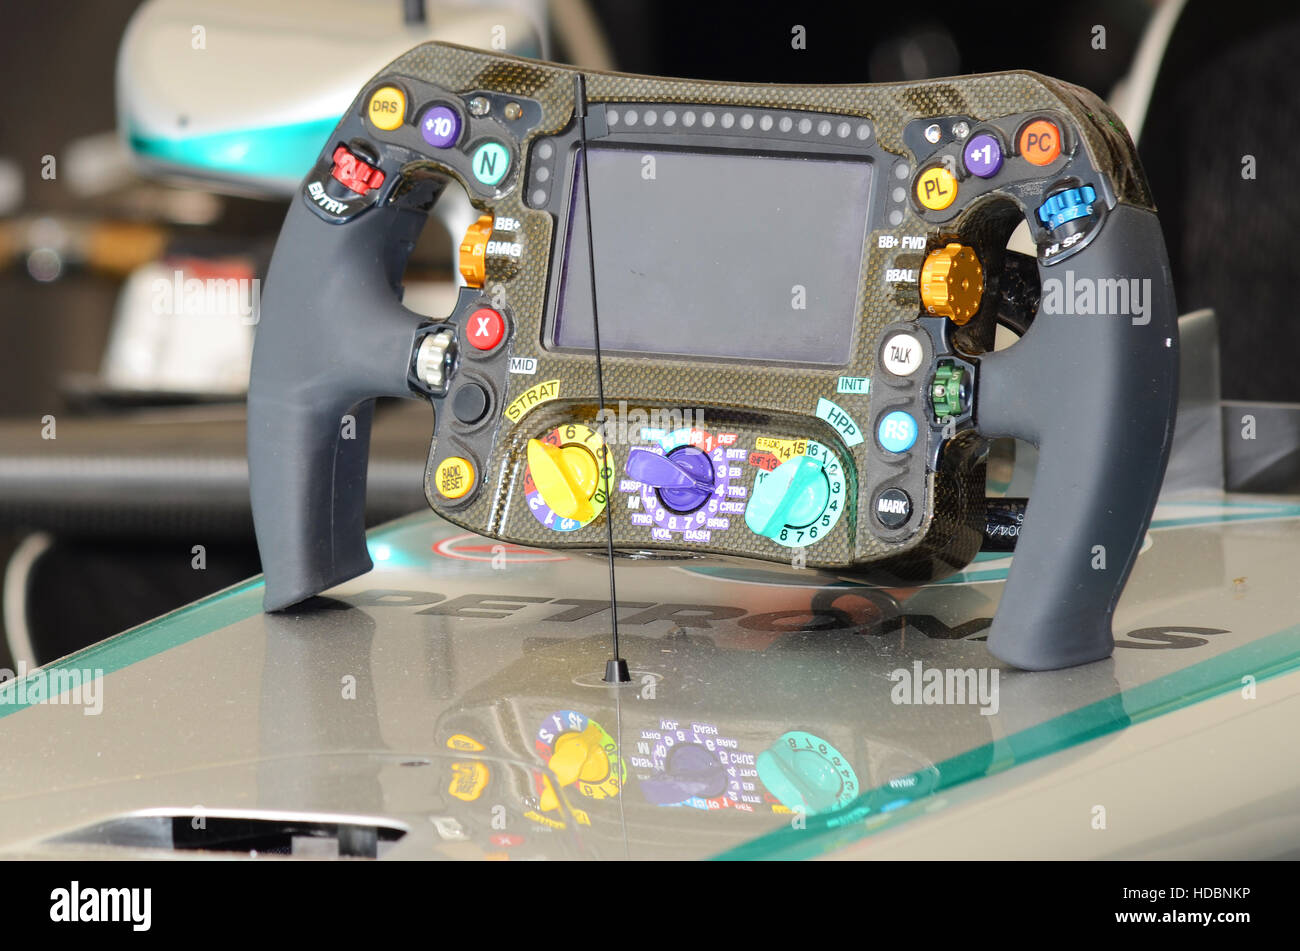 f1 steering wheel stock photos & f1 steering wheel stock images